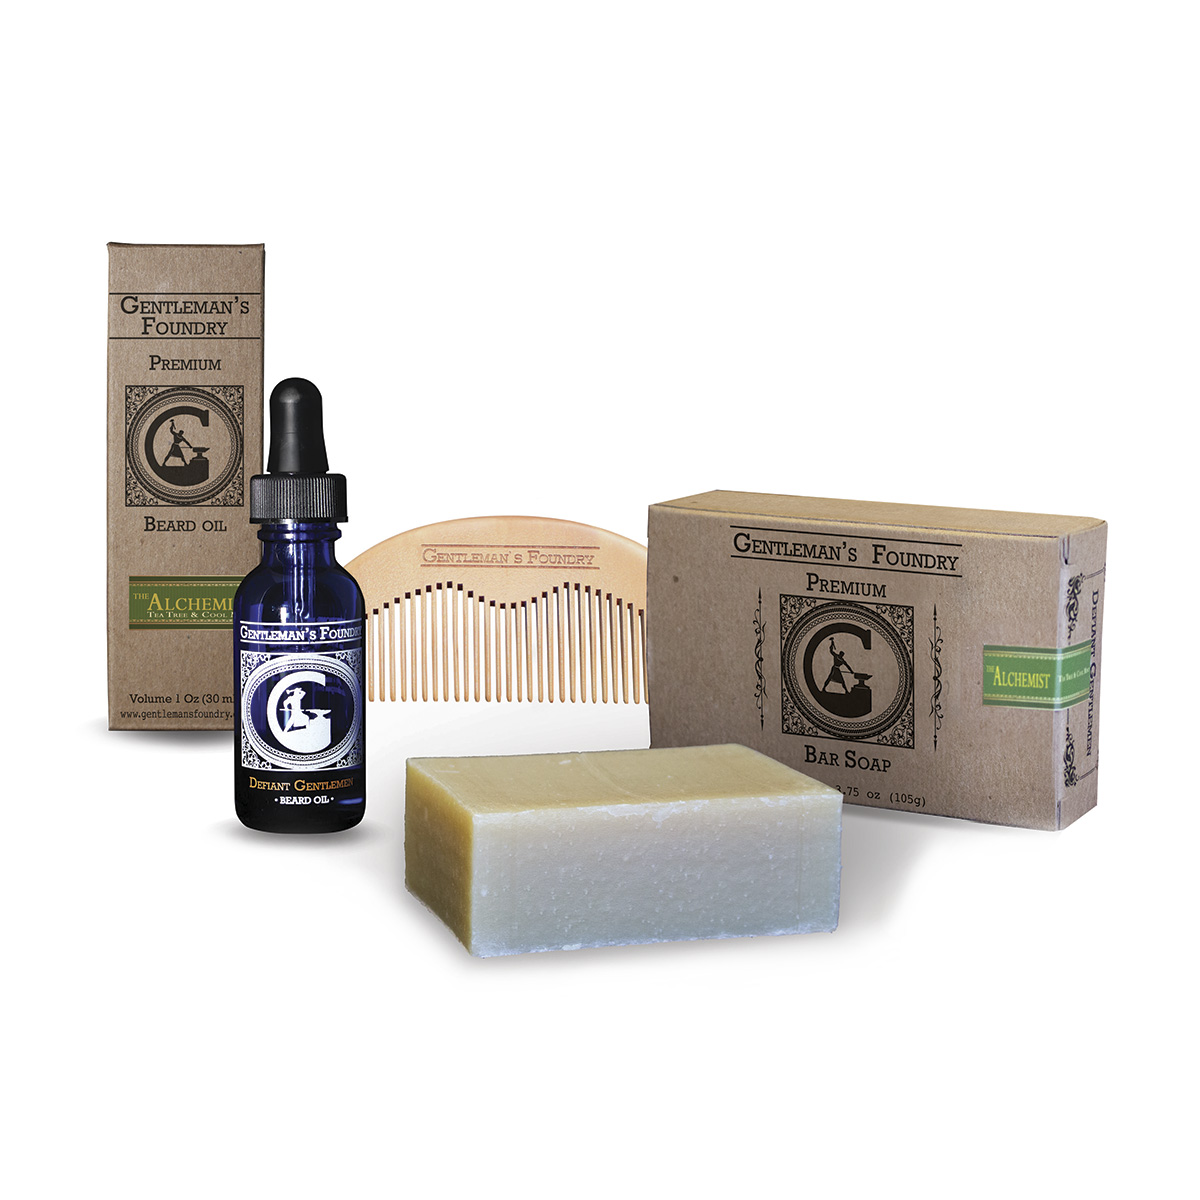 Limited Time Offer! Order Beard Oils and Receive a Free Soap Bar and Comb!